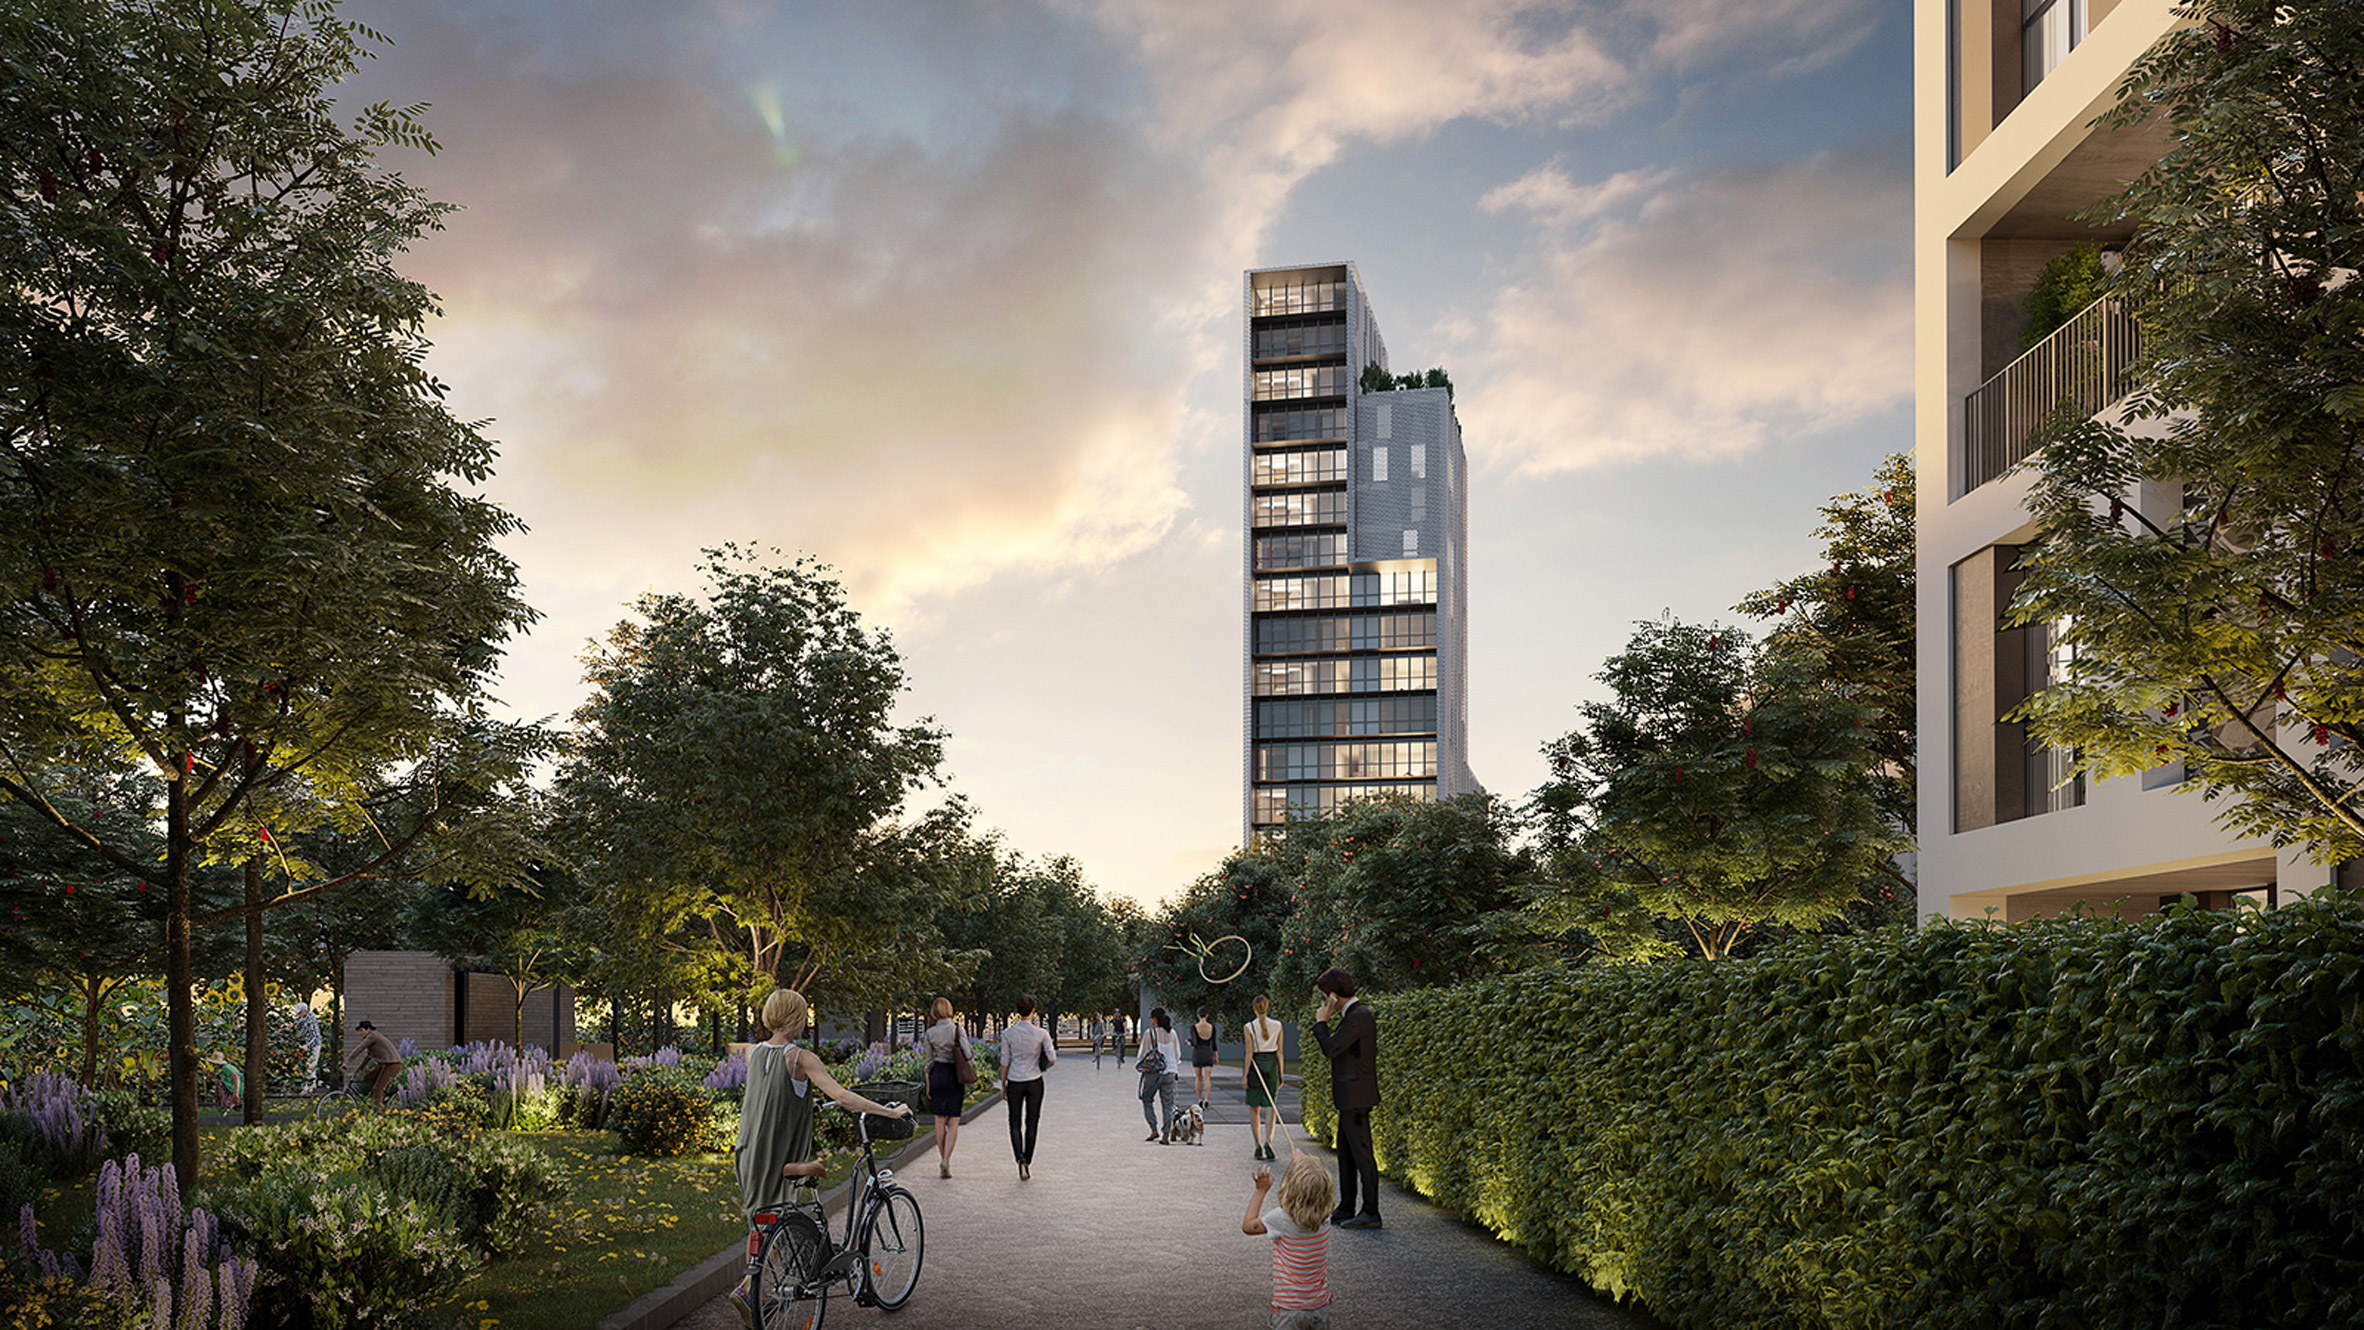 reinventing cities competition includes high rise building